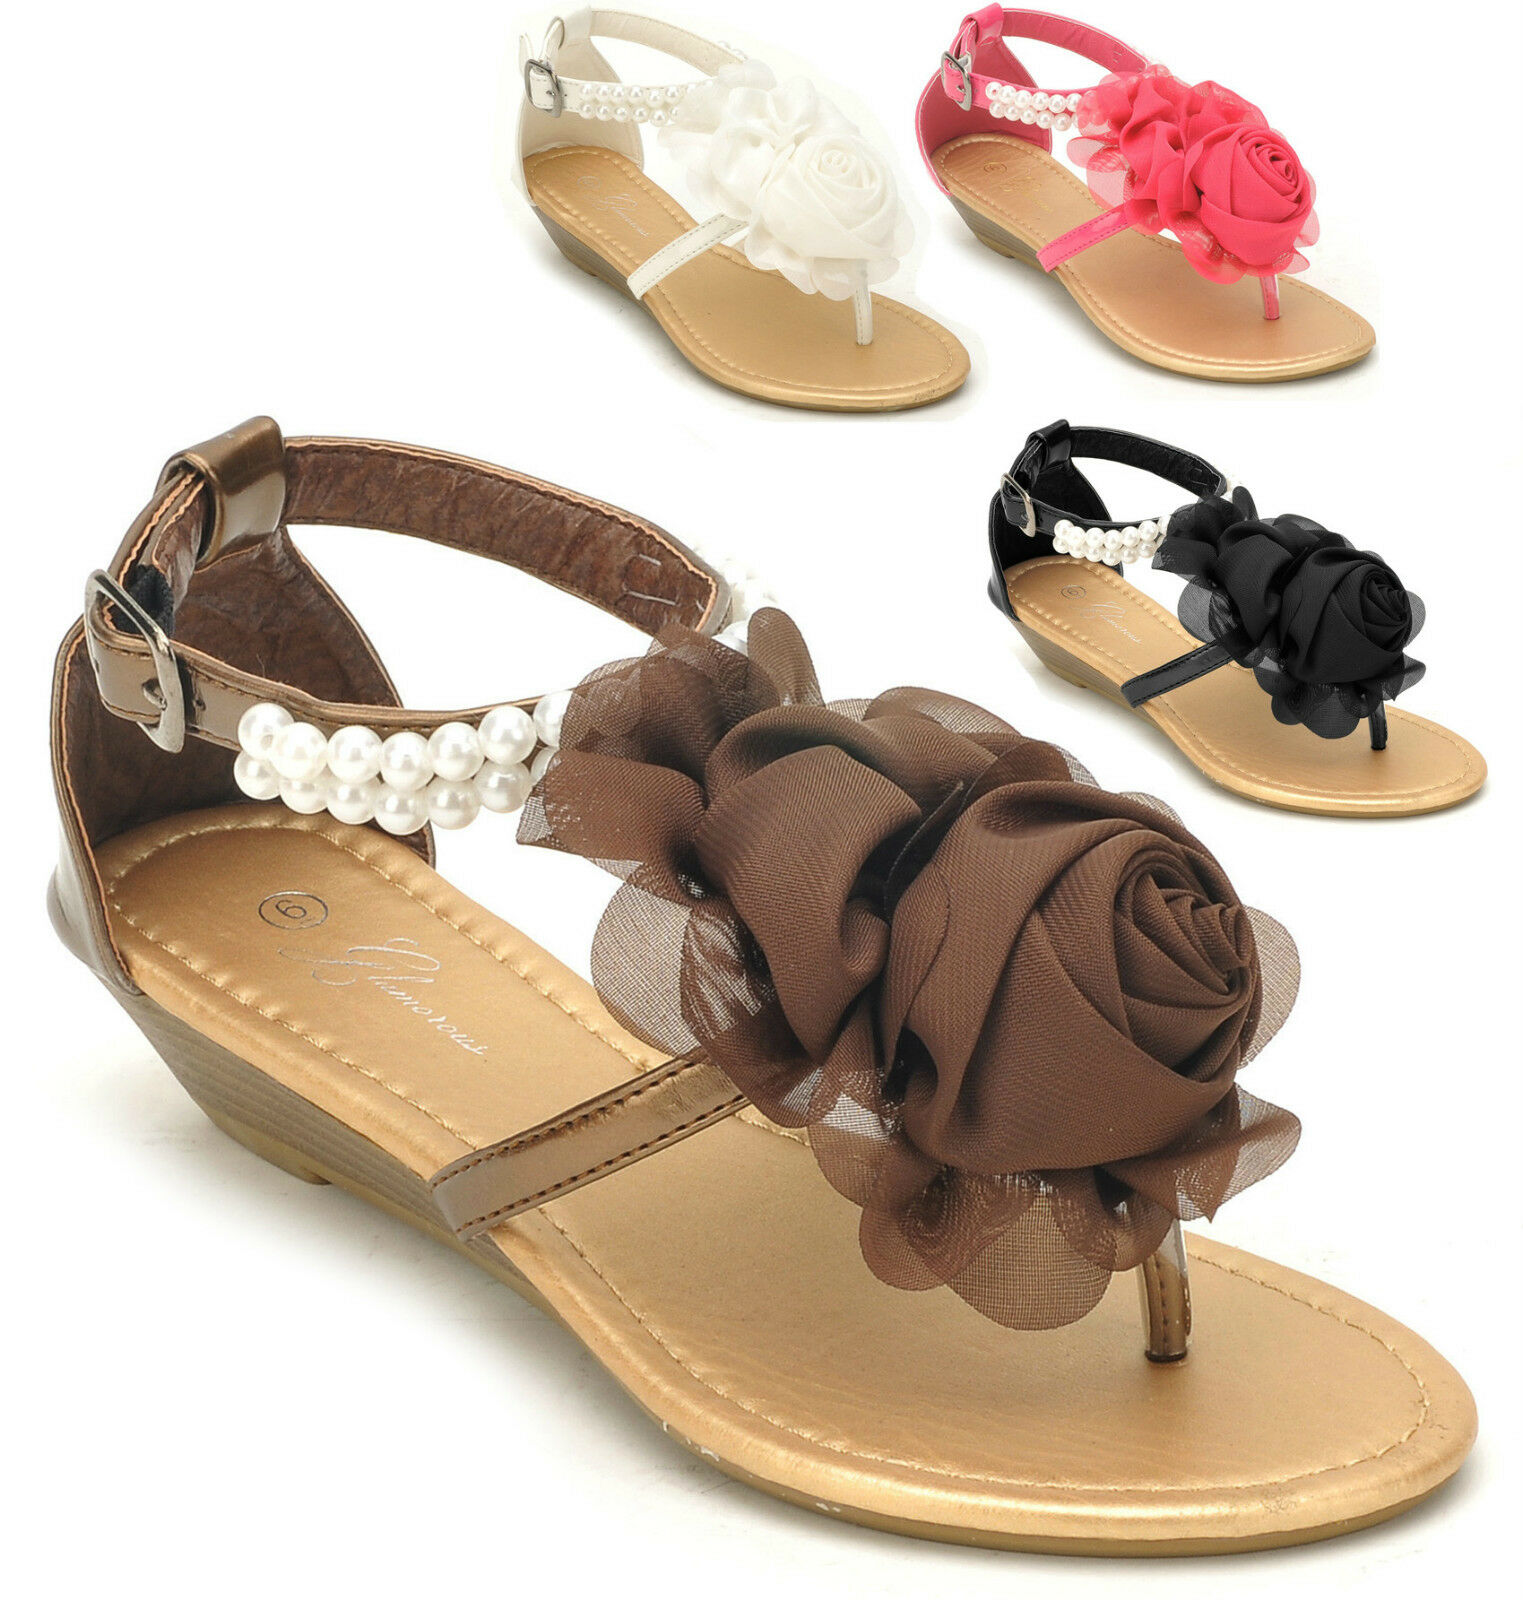 NEW Women's Flower Bow Pearl Ankle Sandals Strap Low Wedge Thong Sandals Ankle Size 5 to 10 f635f2